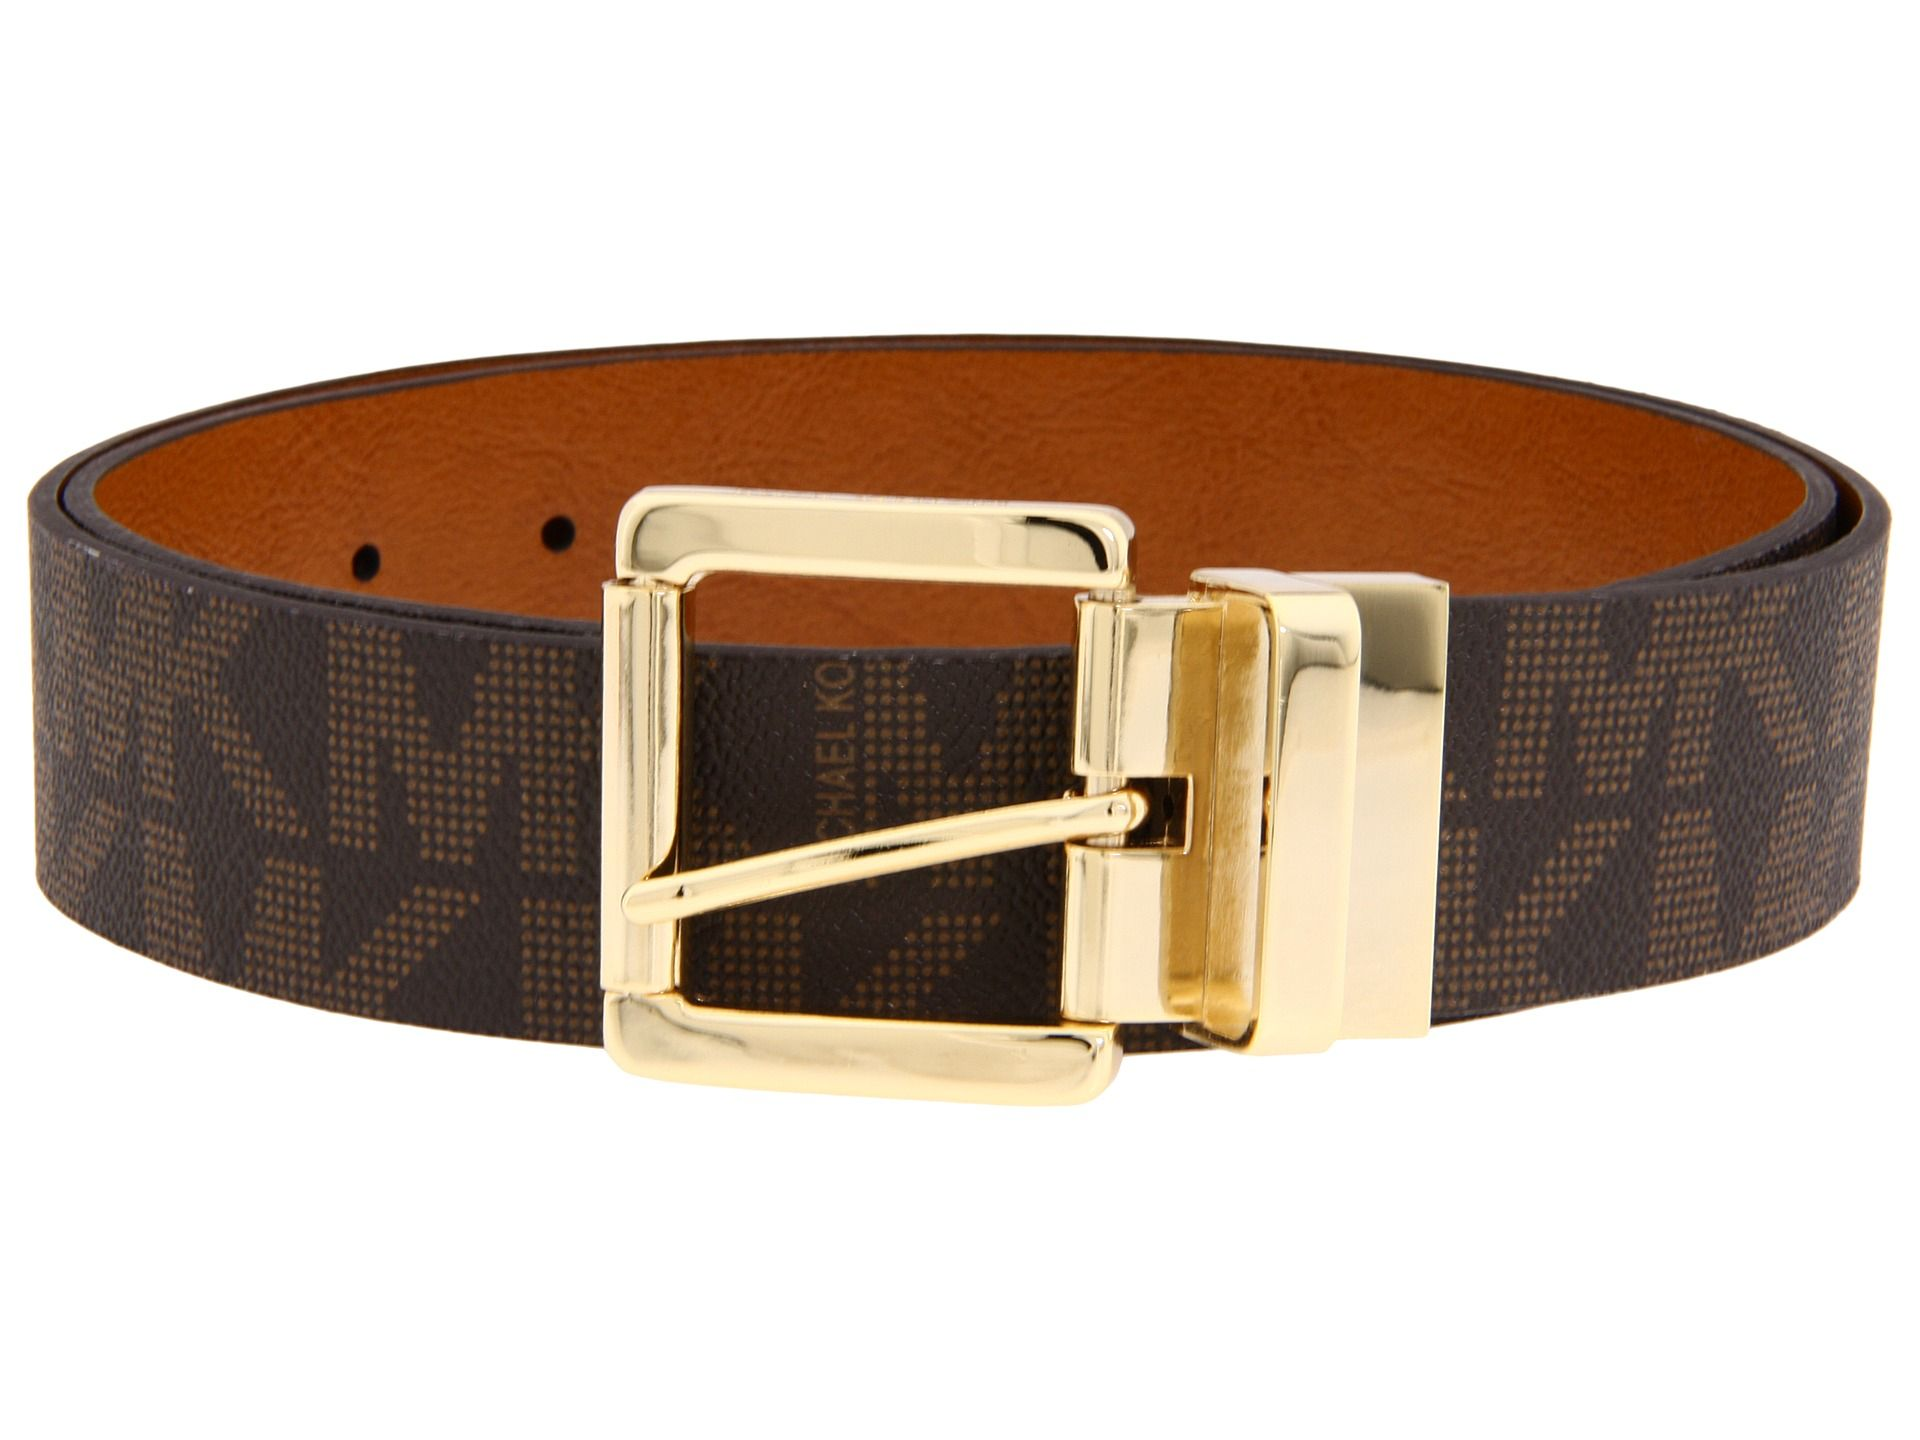 Michael Kors Belt (at Macy\u0027s or belk) size XL